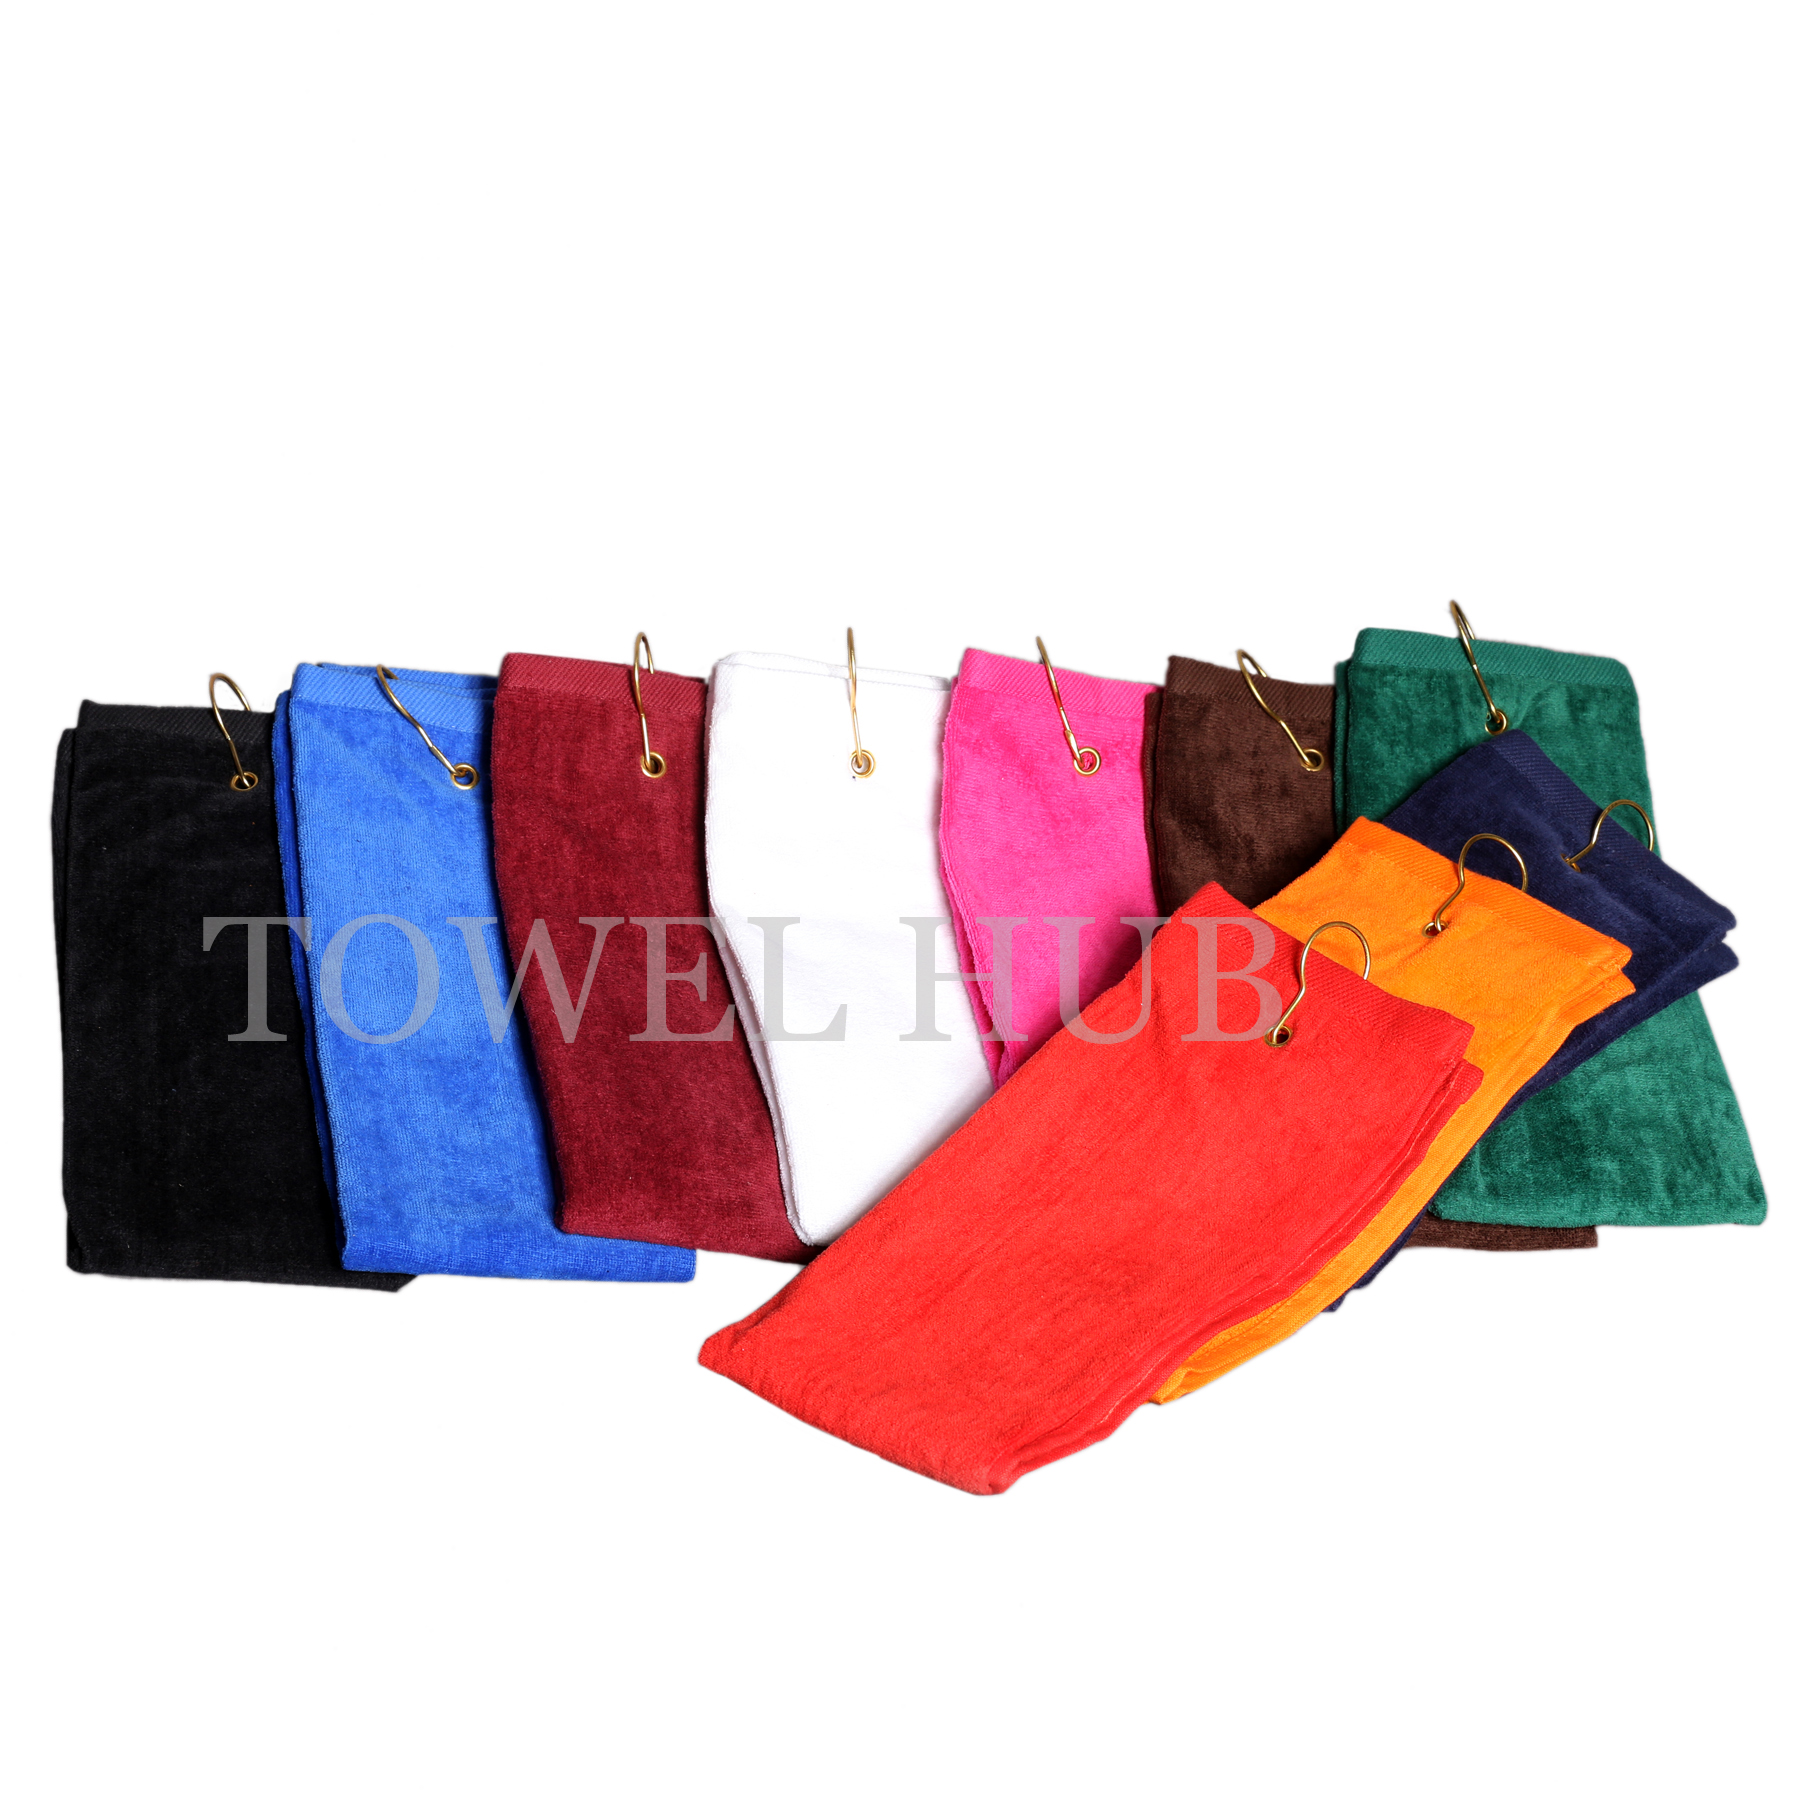 Golf Towels Category Microfiber Towel Standard 16x26 Tri Fold Color With Brass Grommet Hook